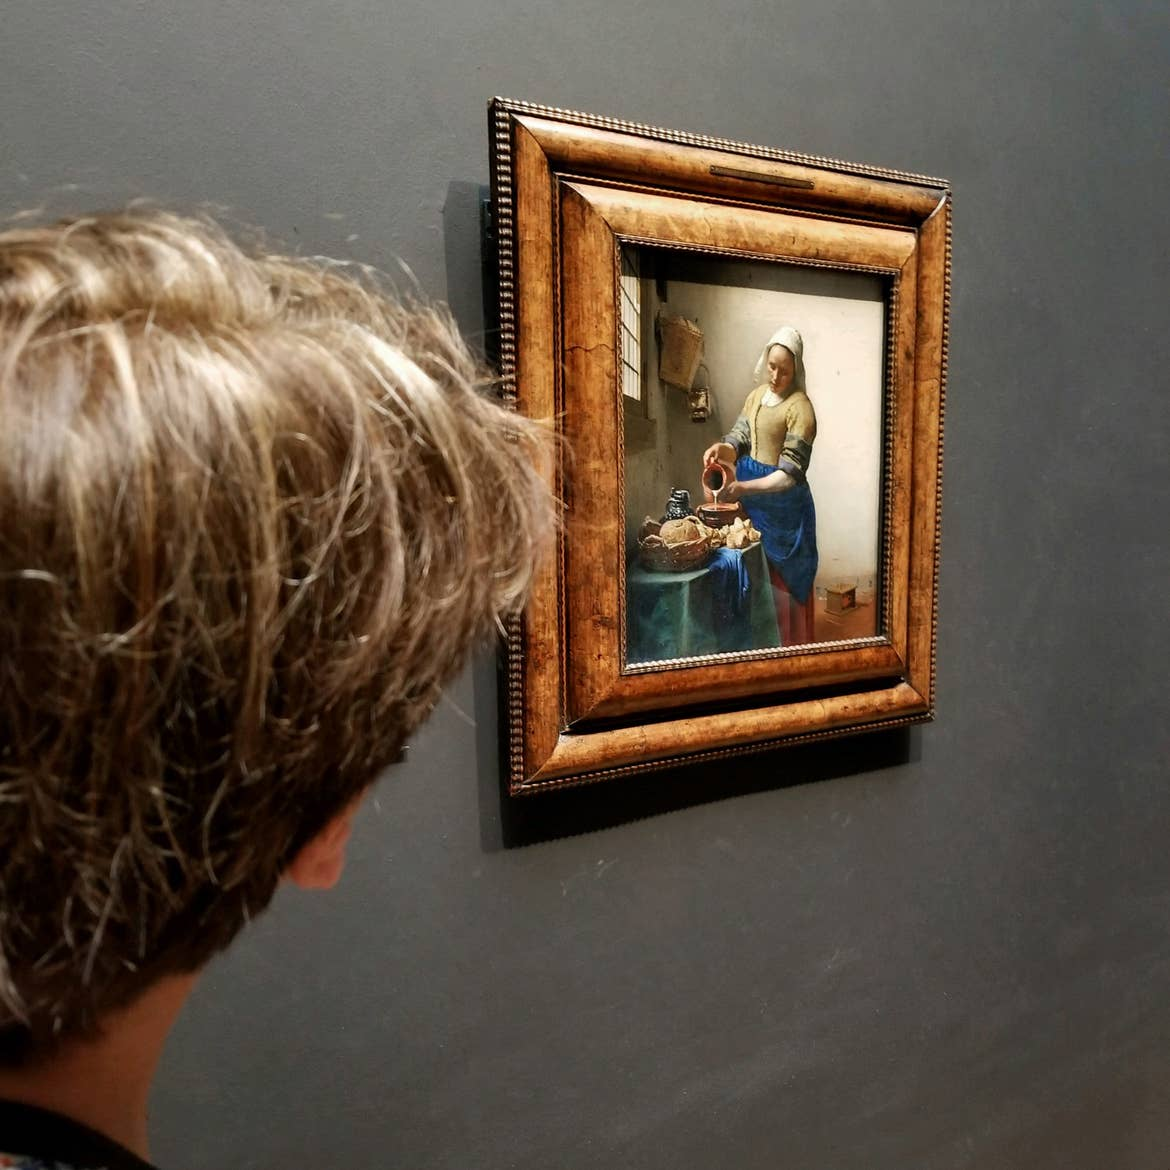 A woman looks at the famous 'The Milkmaid' painting by Johannes Vermeer located at the Rijksmuseum in Amsterdam, Netherlands.